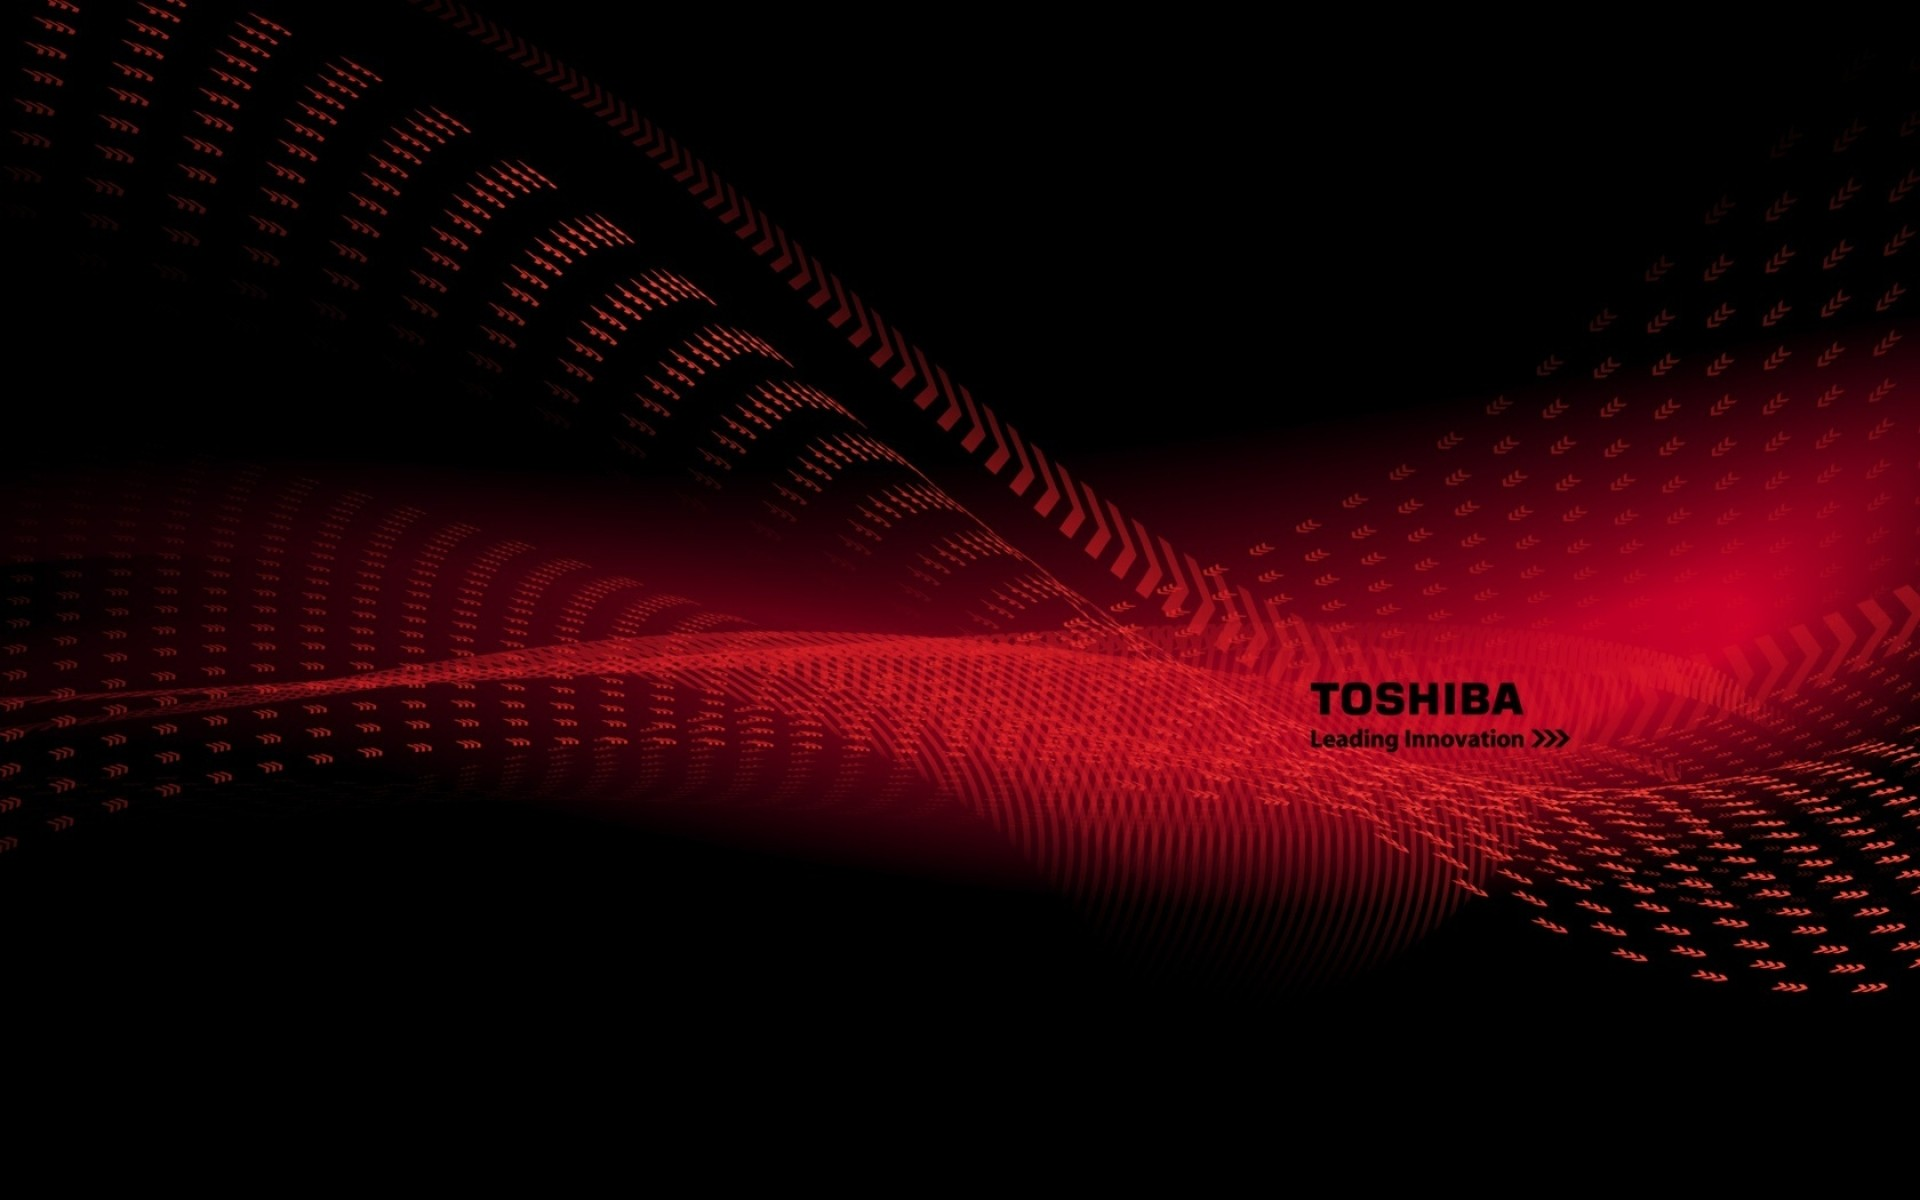 toshiba red wave